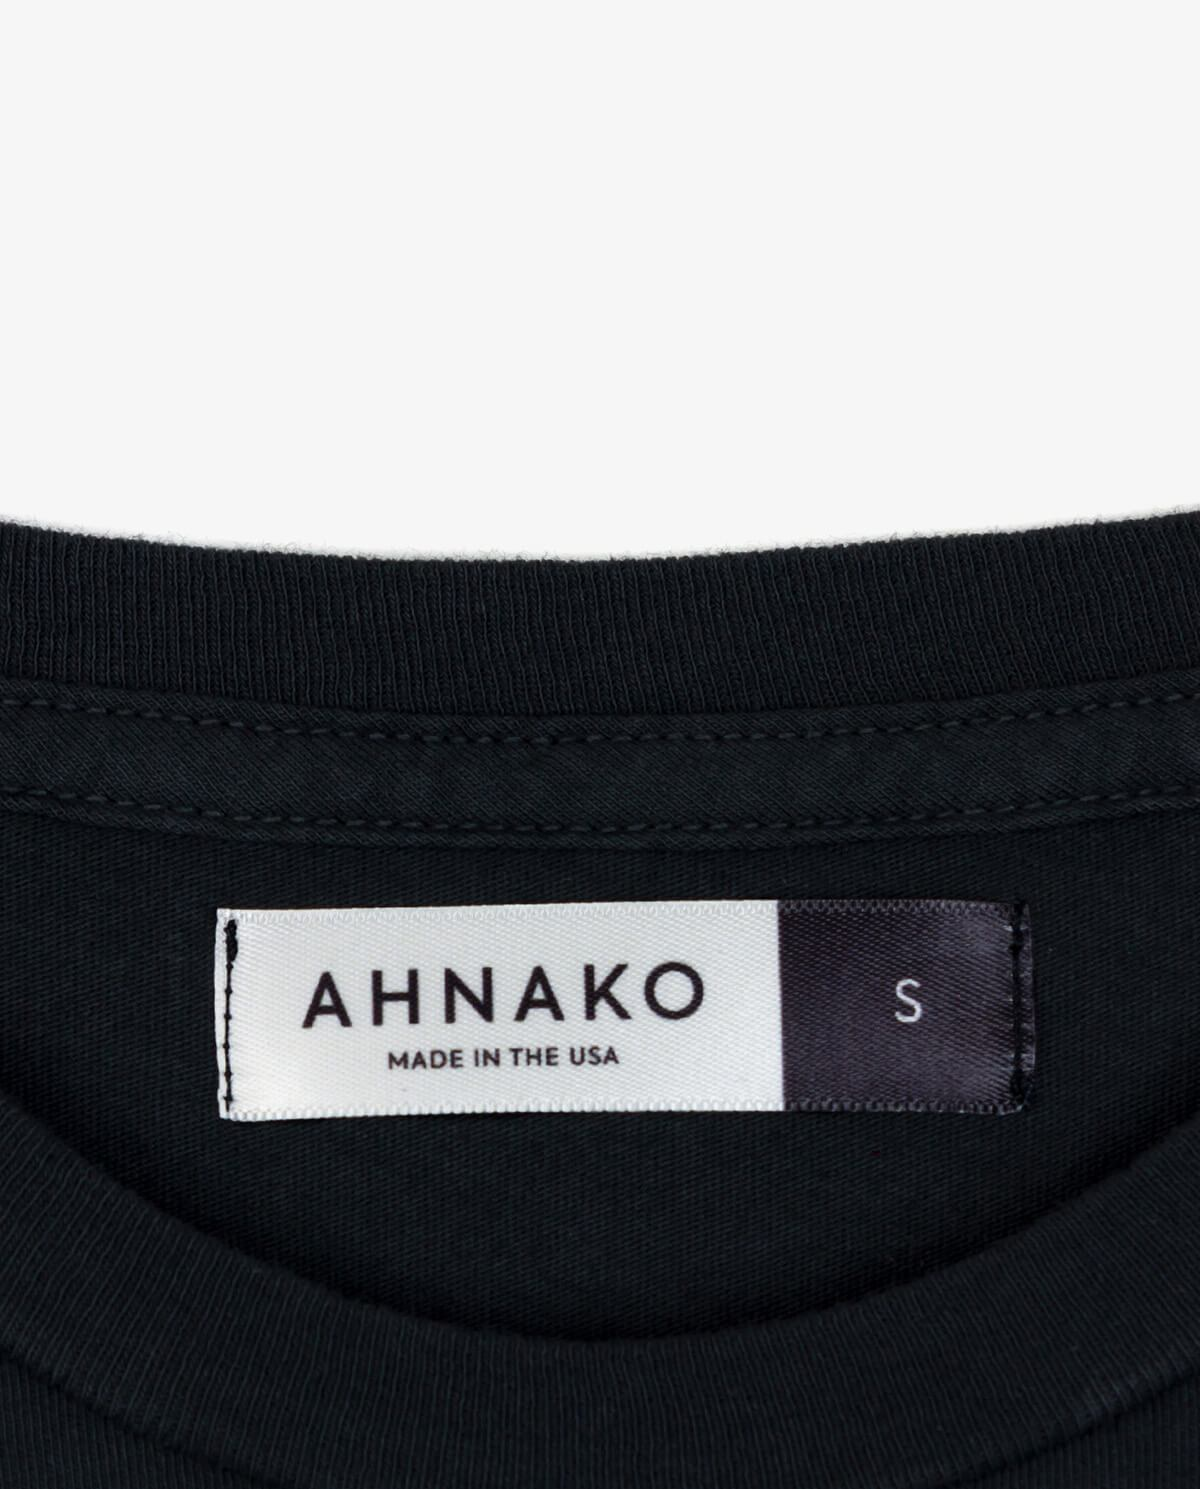 Ahnako Basic Tee Shirt - Vintage Black - Clothing Tag